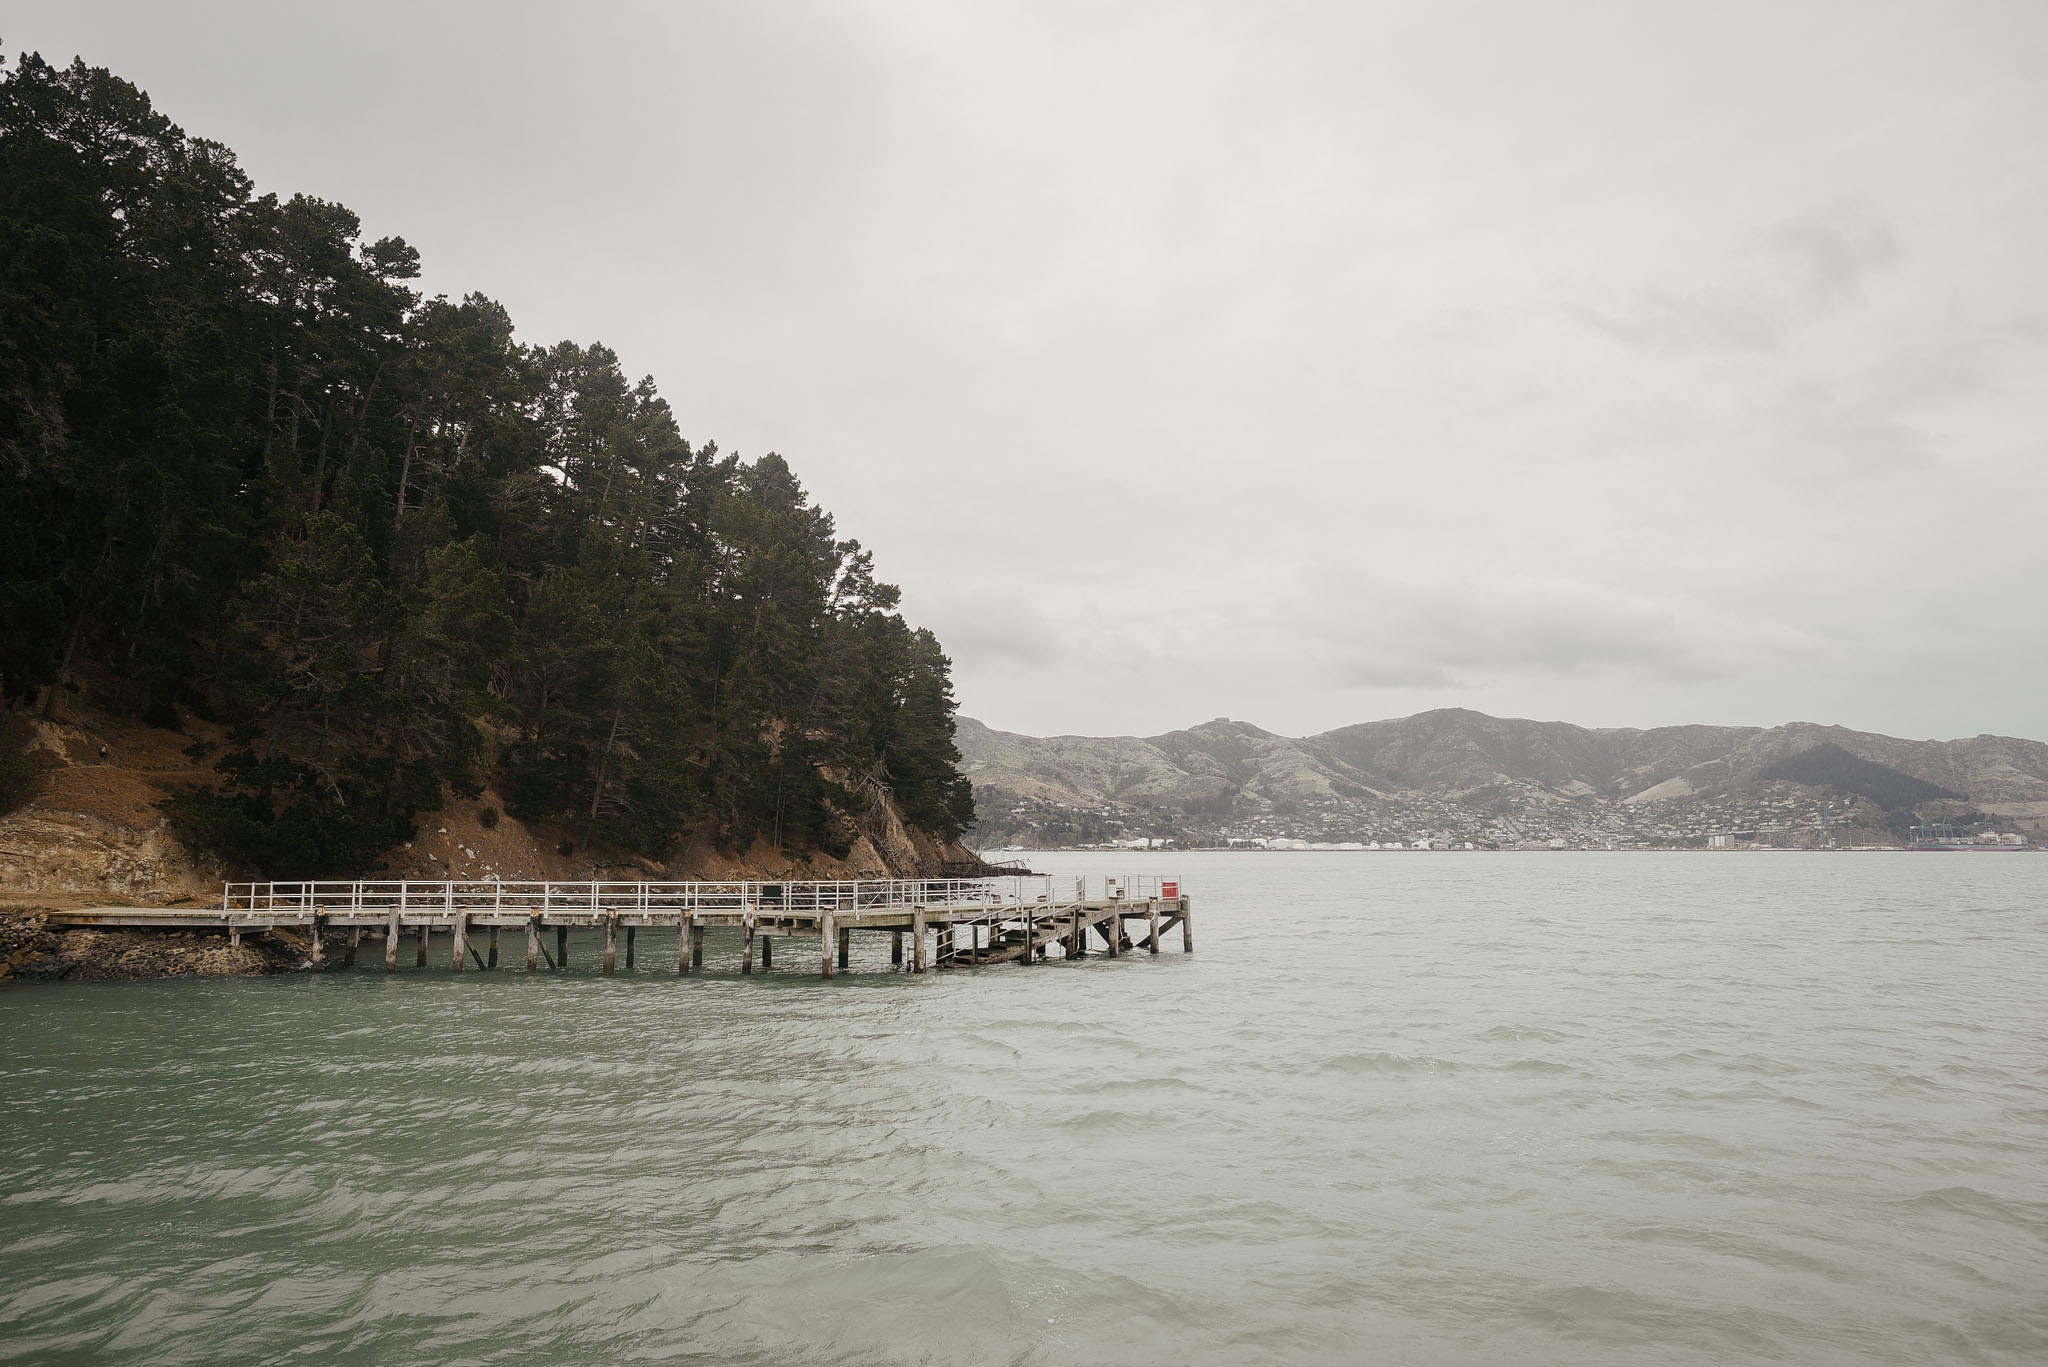 Quail island jetty - view from water